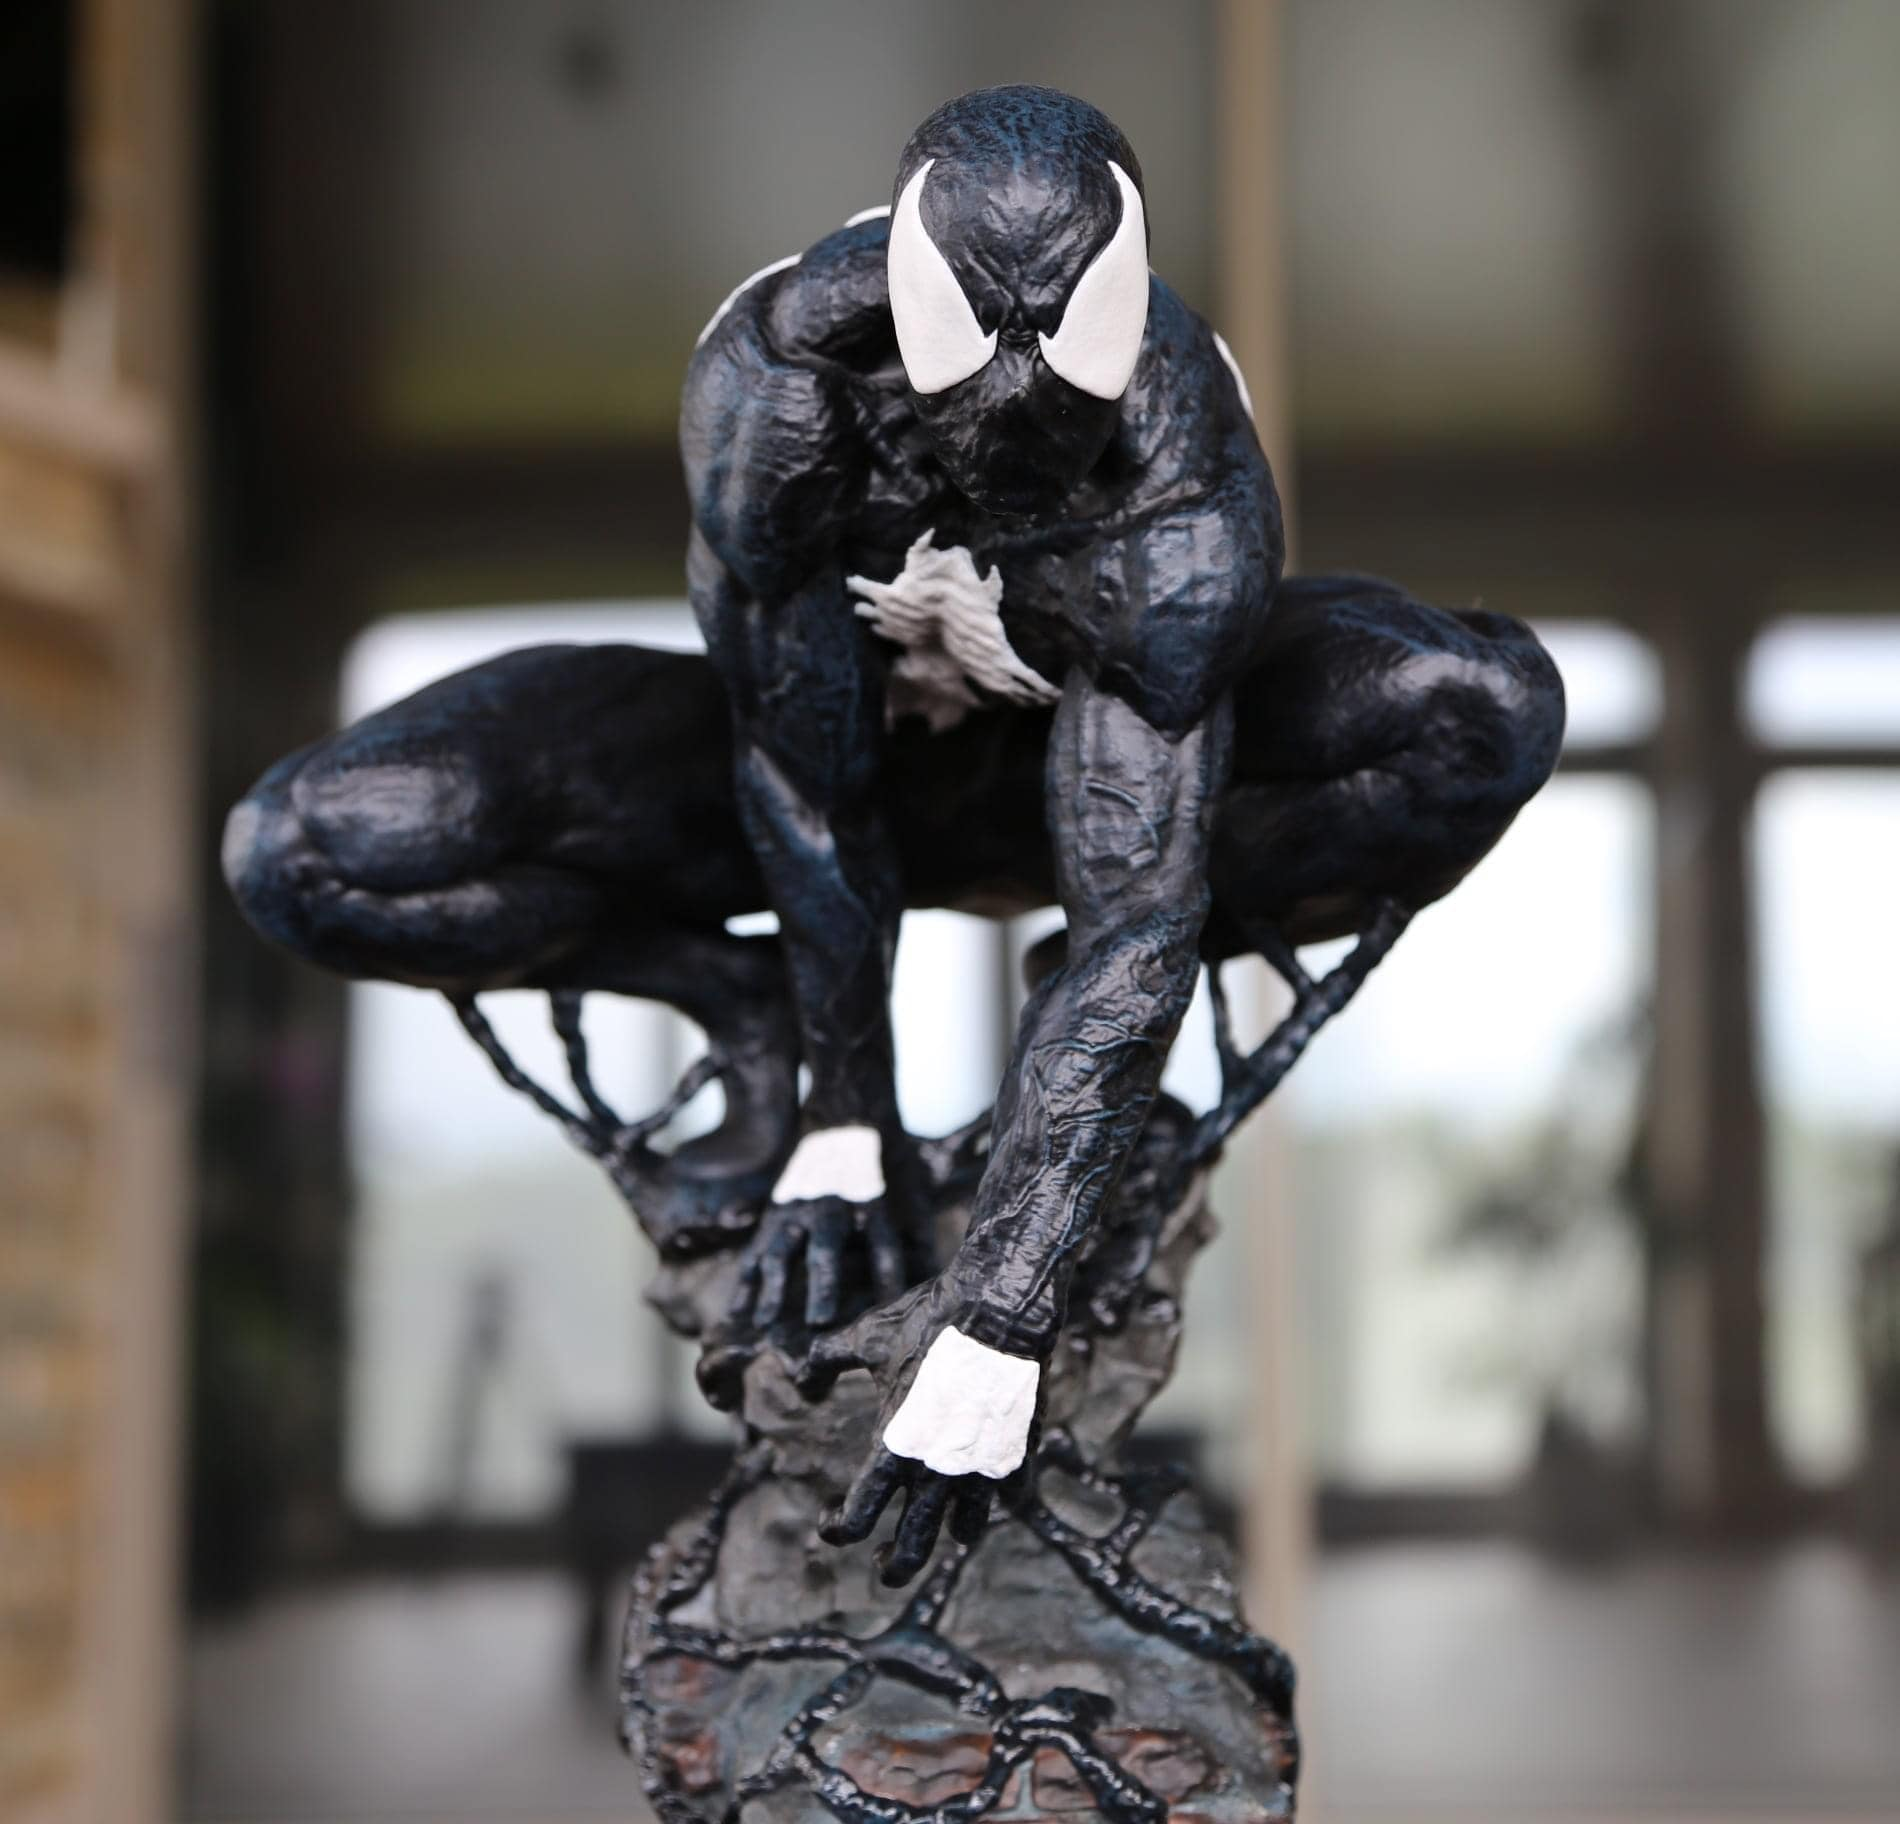 Vizion Exo Symbiote Spider-man / Homem Aranha Black 1/4 statue  - Movie Freaks Collectibles